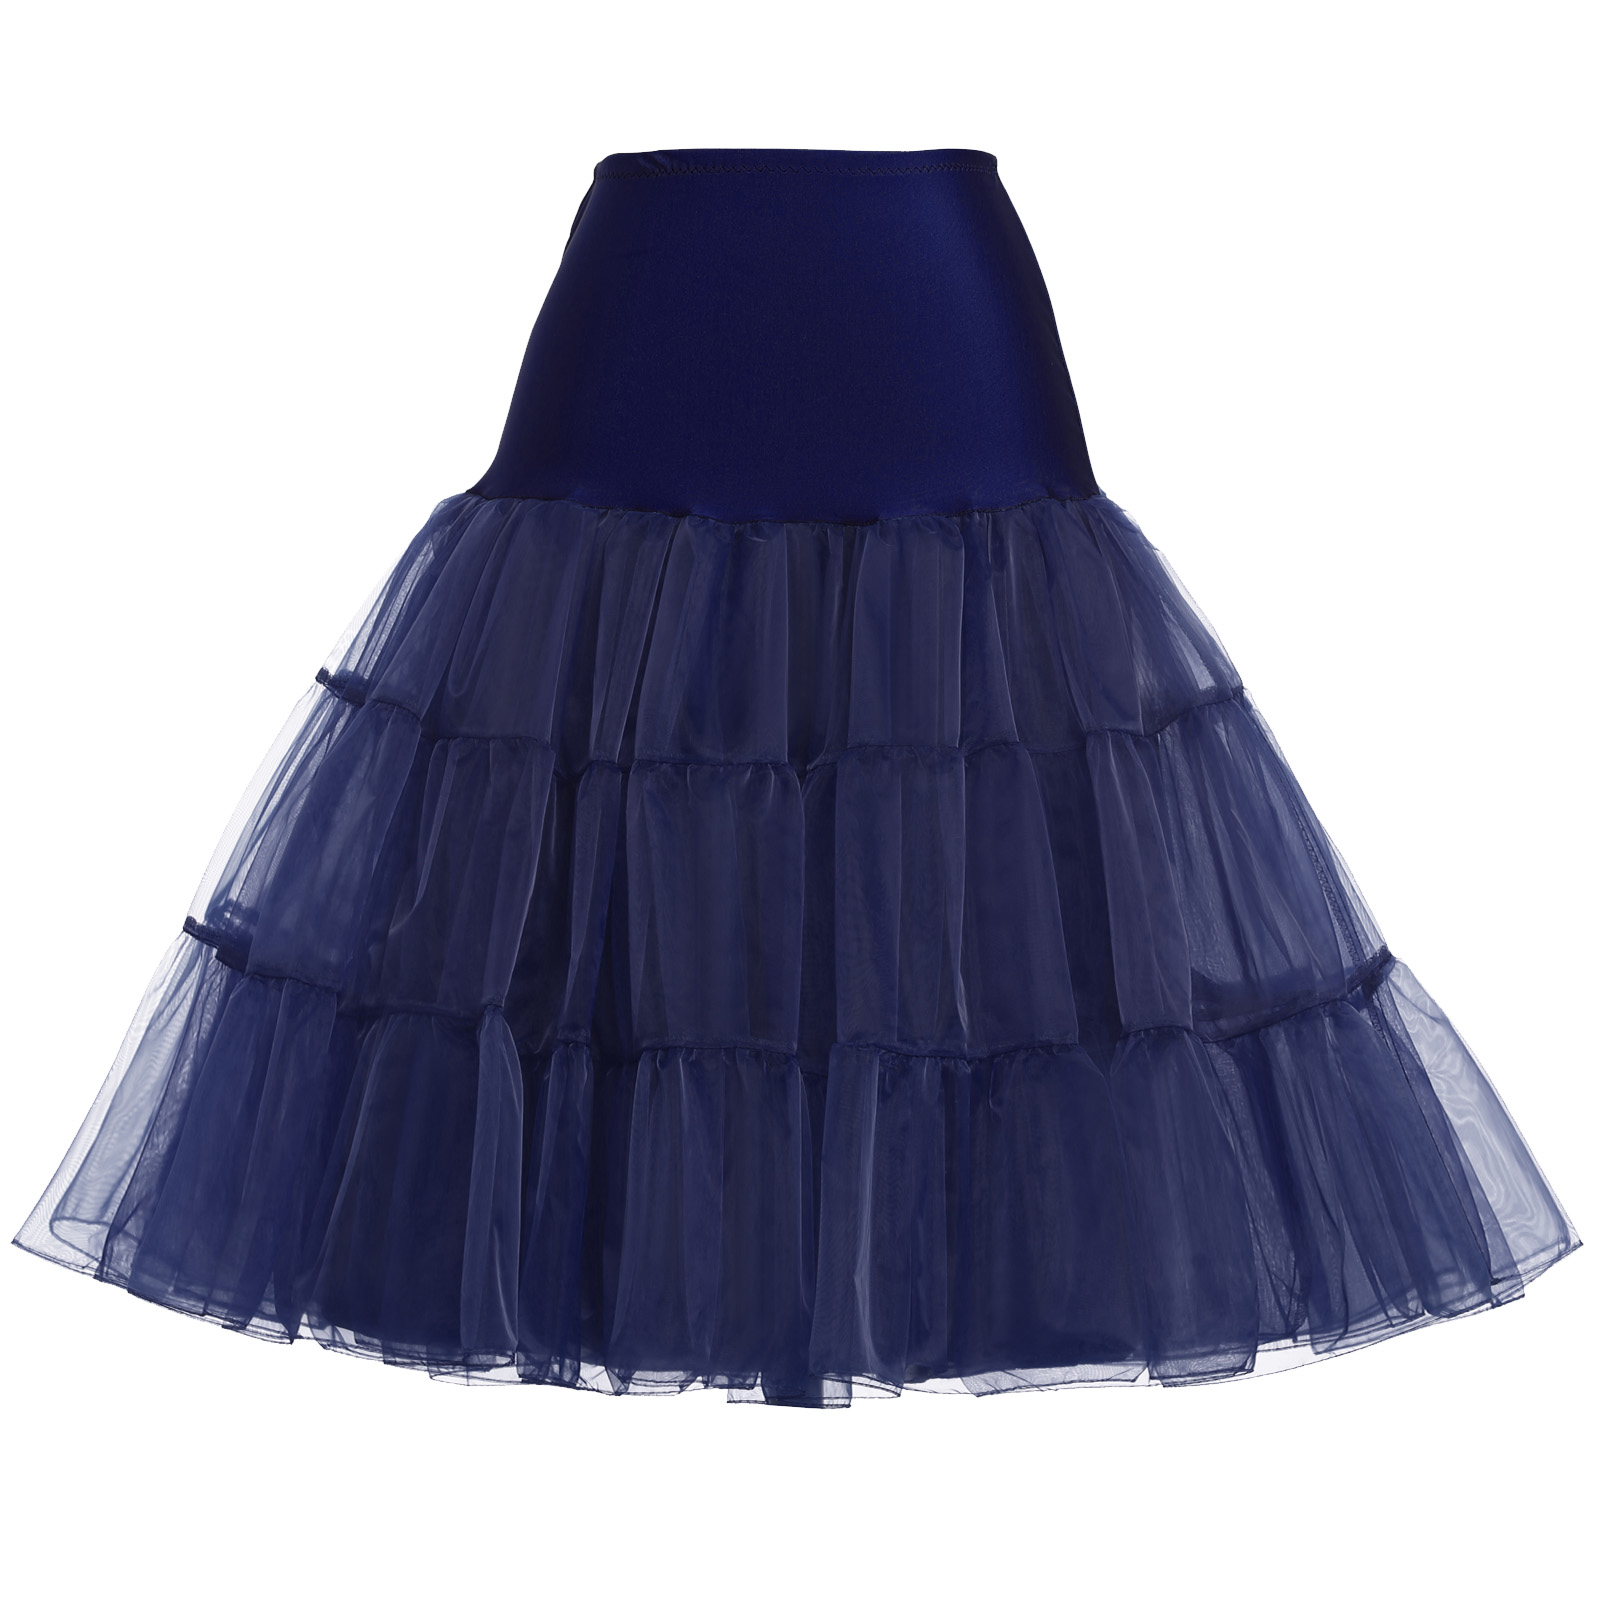 Lady Floral Mesh Lace Midi Pleated Skirt Tulle A-Line Swing Underskirt Petticoat